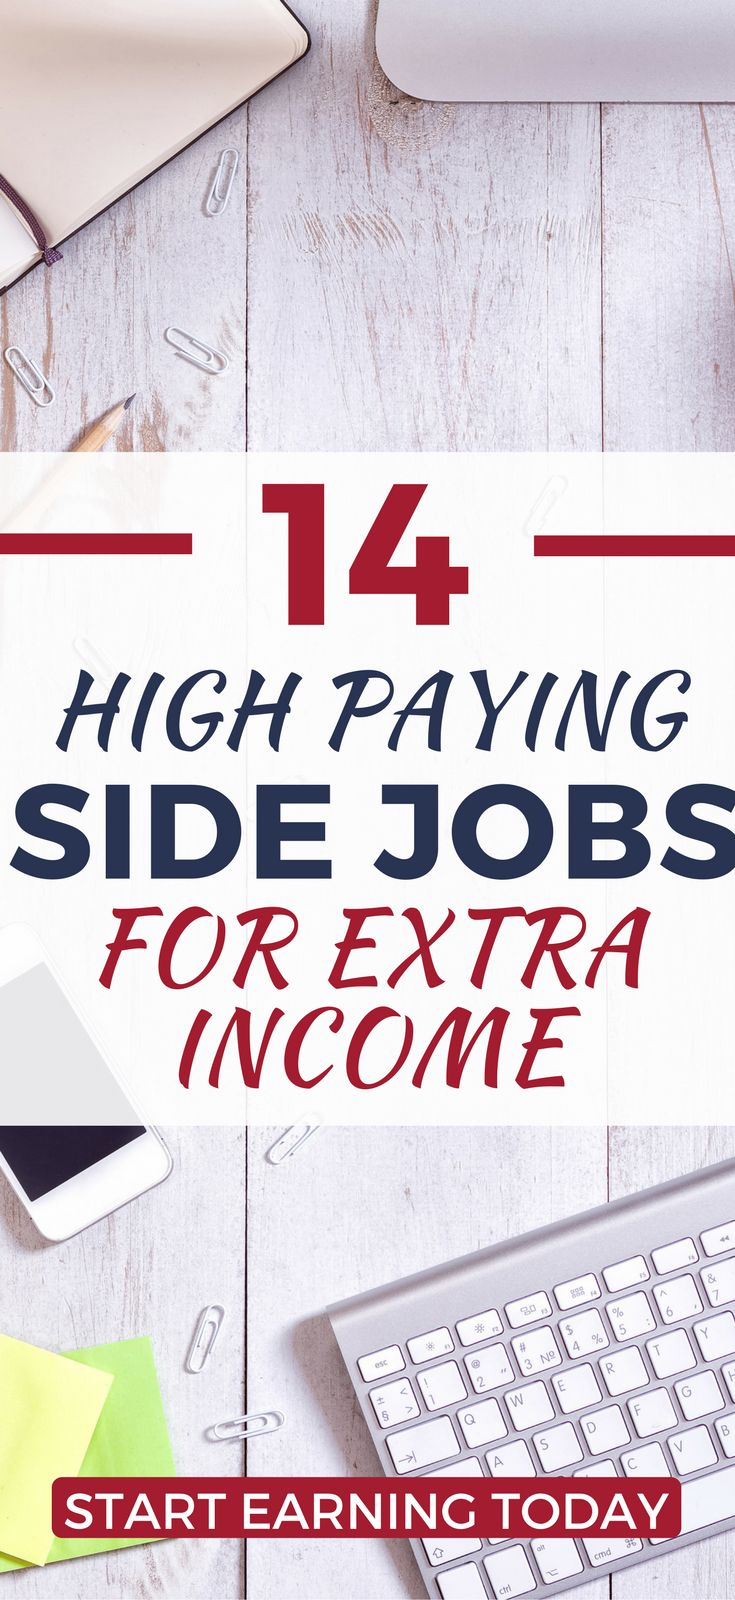 Need some extra cast, fast? Here's high-paying, flexible part-time job ideas you can start today to make extra income.     earn more money | make more money | make money at home | home business ideas | work from home | increase your income | money making ideas | make money fast | make money online | make money from home    #money #jobs #finance #makemoney via @https://www.pinterest.com/thewaystowealth/